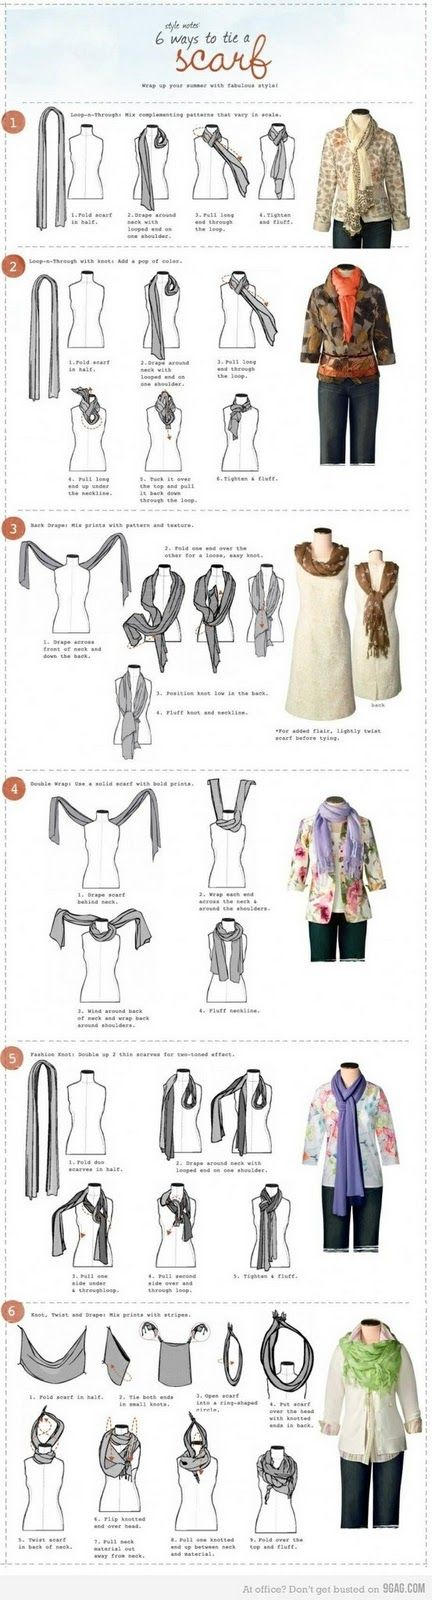 Some ways to wear a scarf.